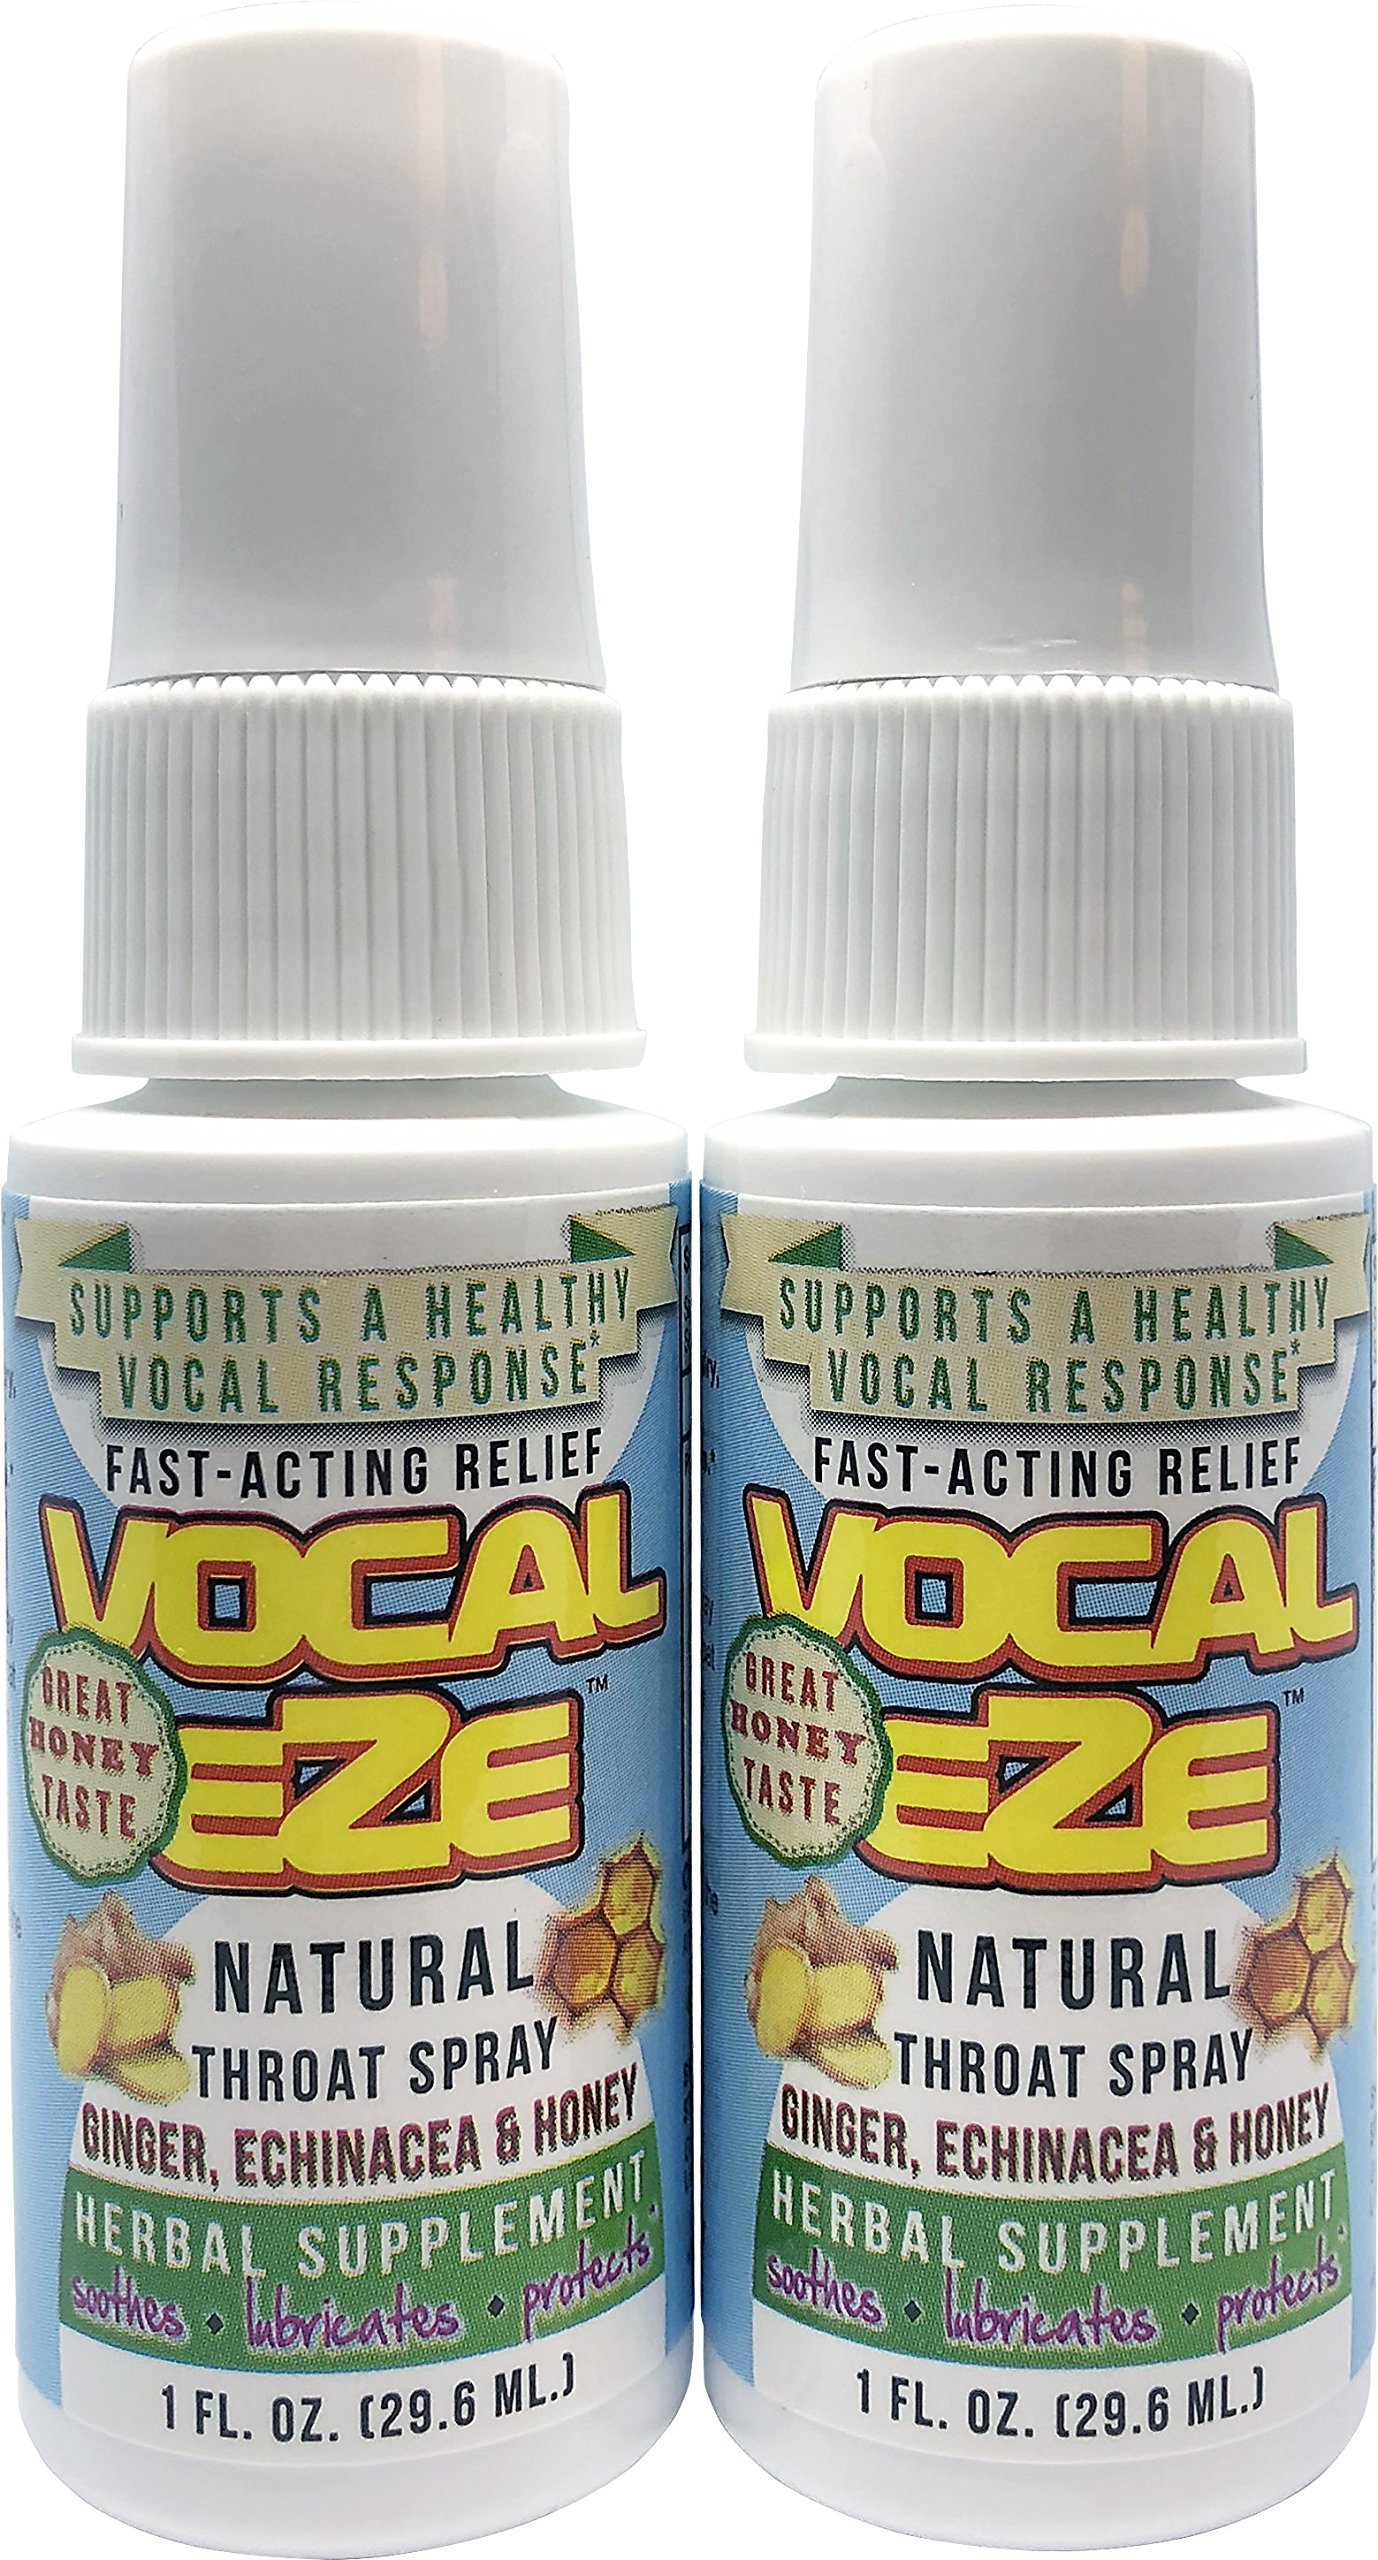 Herbal Throat Spray Professional Strength Vocal Eze, 2 pack, with Honey, Aloe, Echinacea, Ginger (vocaleze)